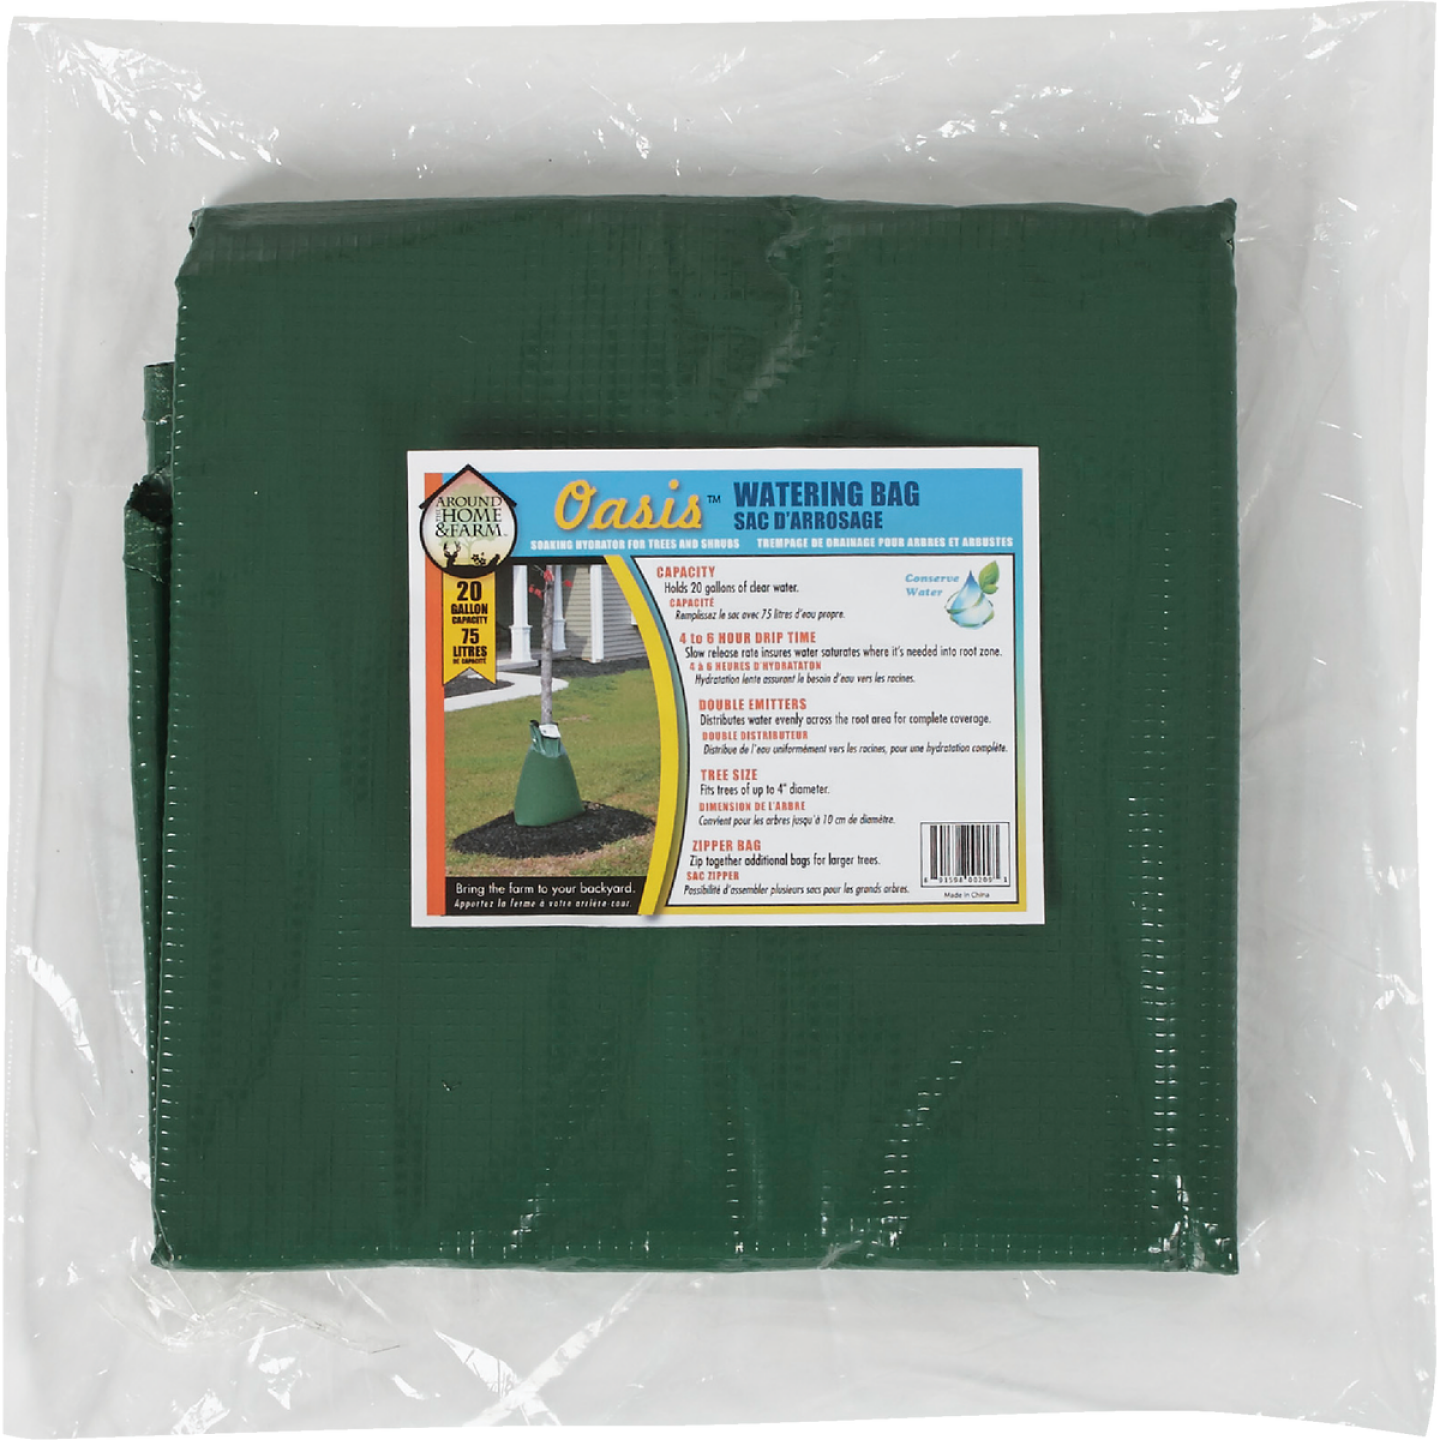 Oasis Green 20 Gal. Plastic Tree Watering Bag Image 2